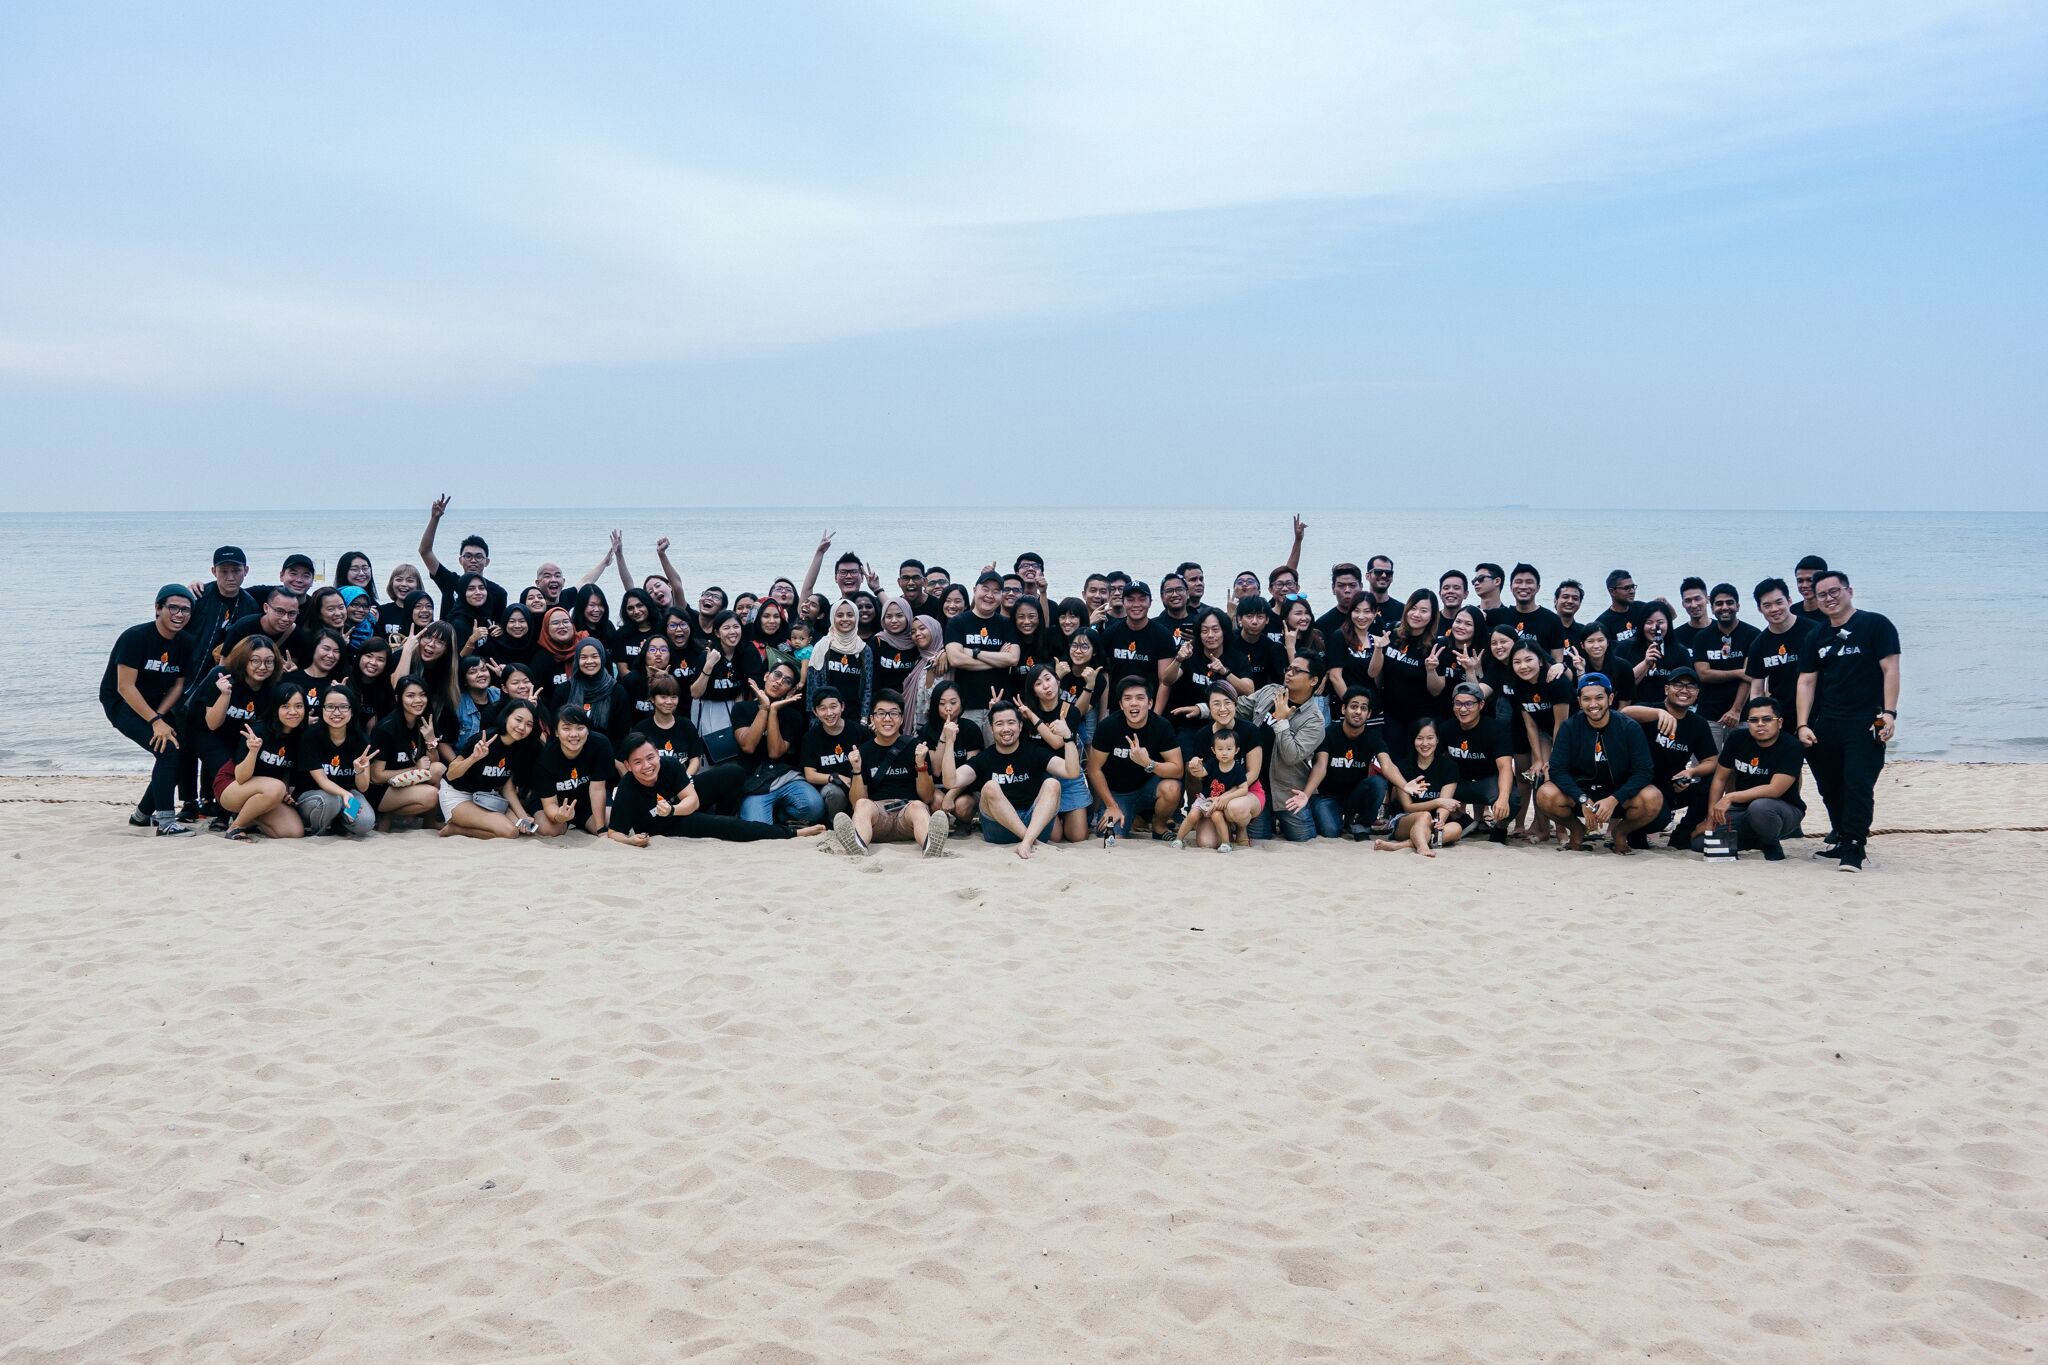 The REV Asia team at their recent company retreat in March 2017.